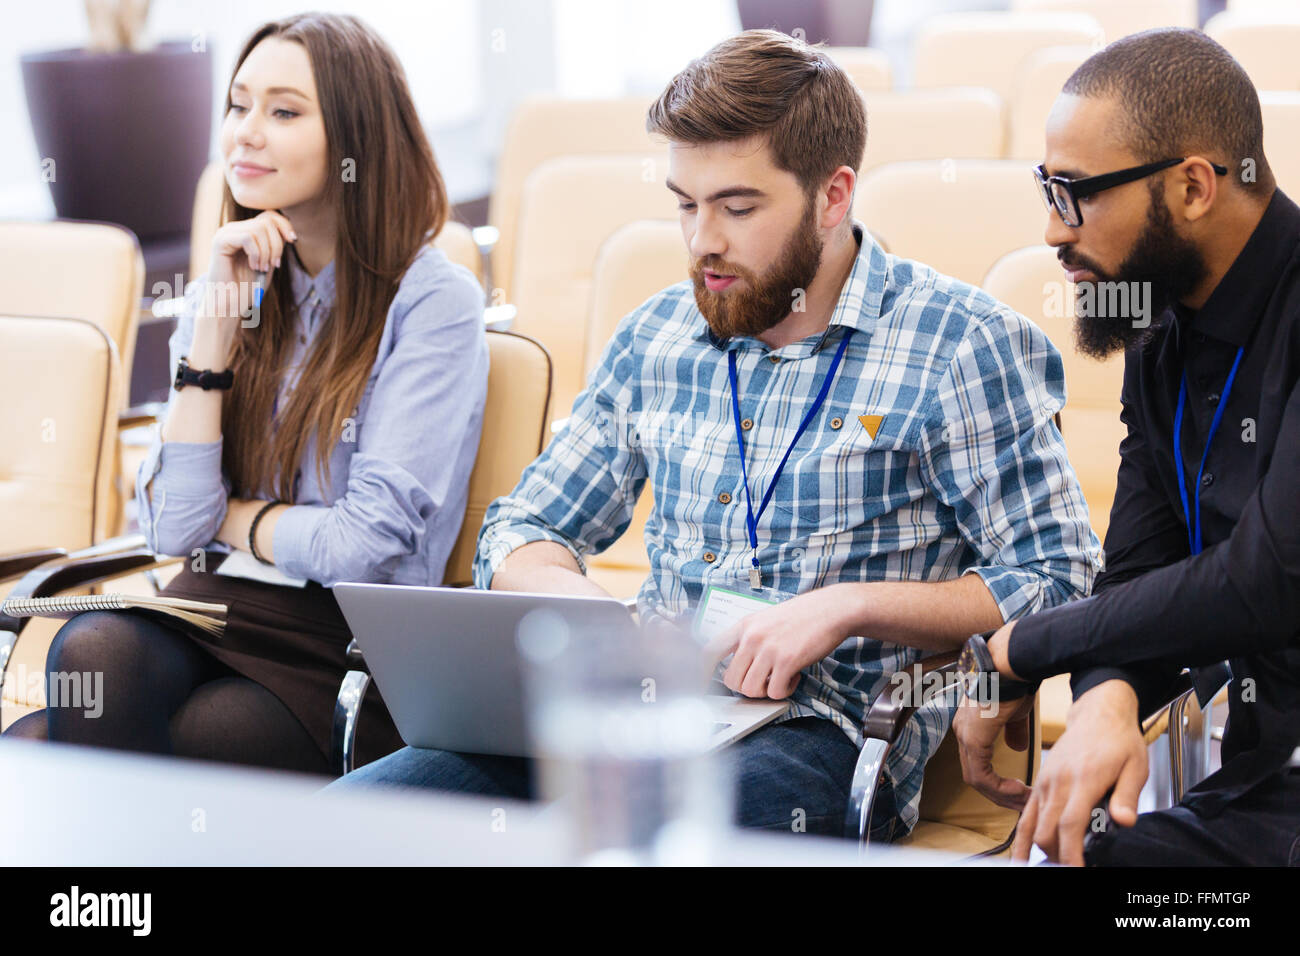 Multiethnic group of young business people using laptop sitting on meeting in conference hall - Stock Image